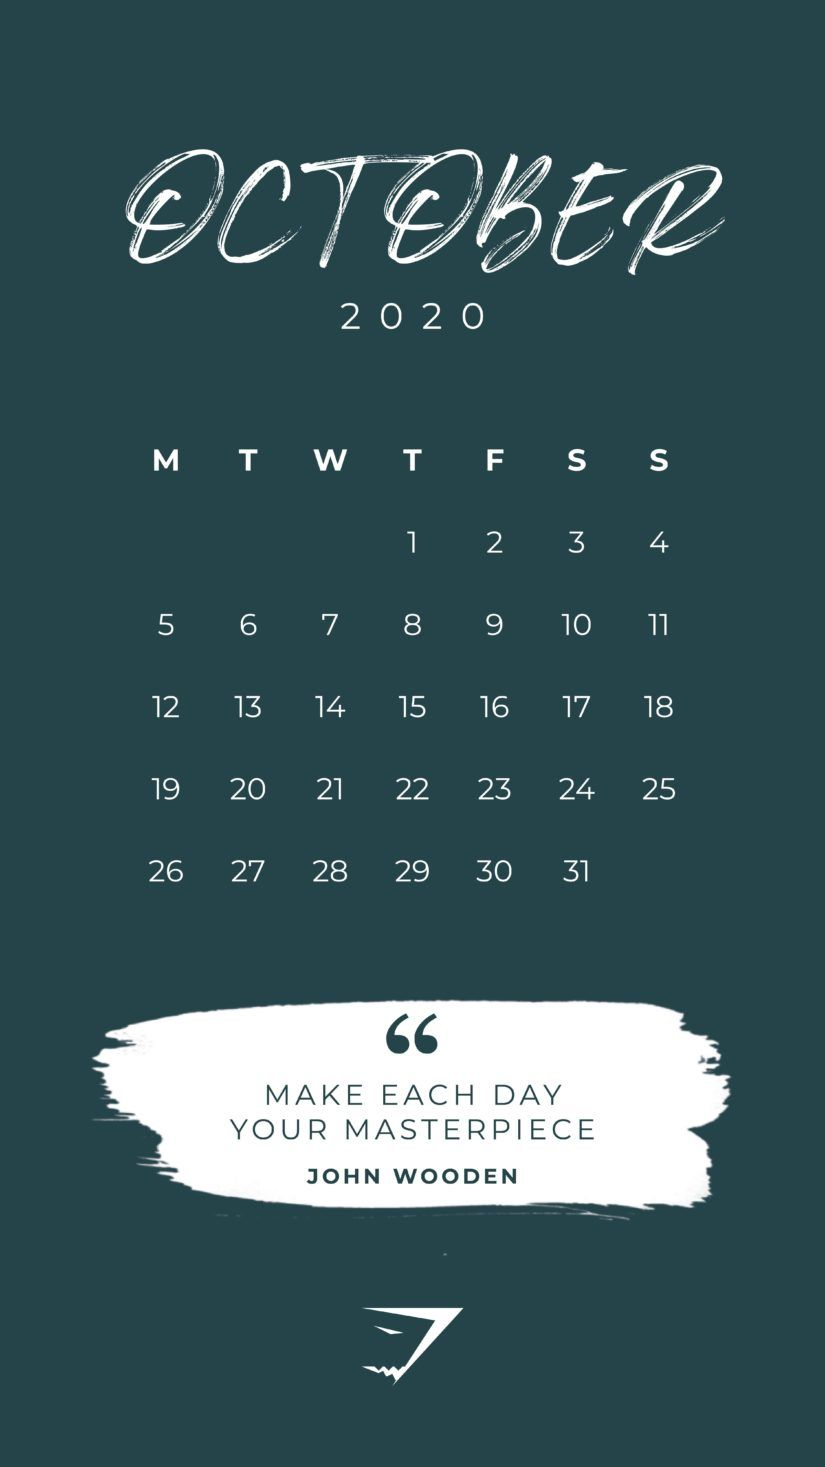 50 Printable October 2020 Calendars with Holidays 825x1467